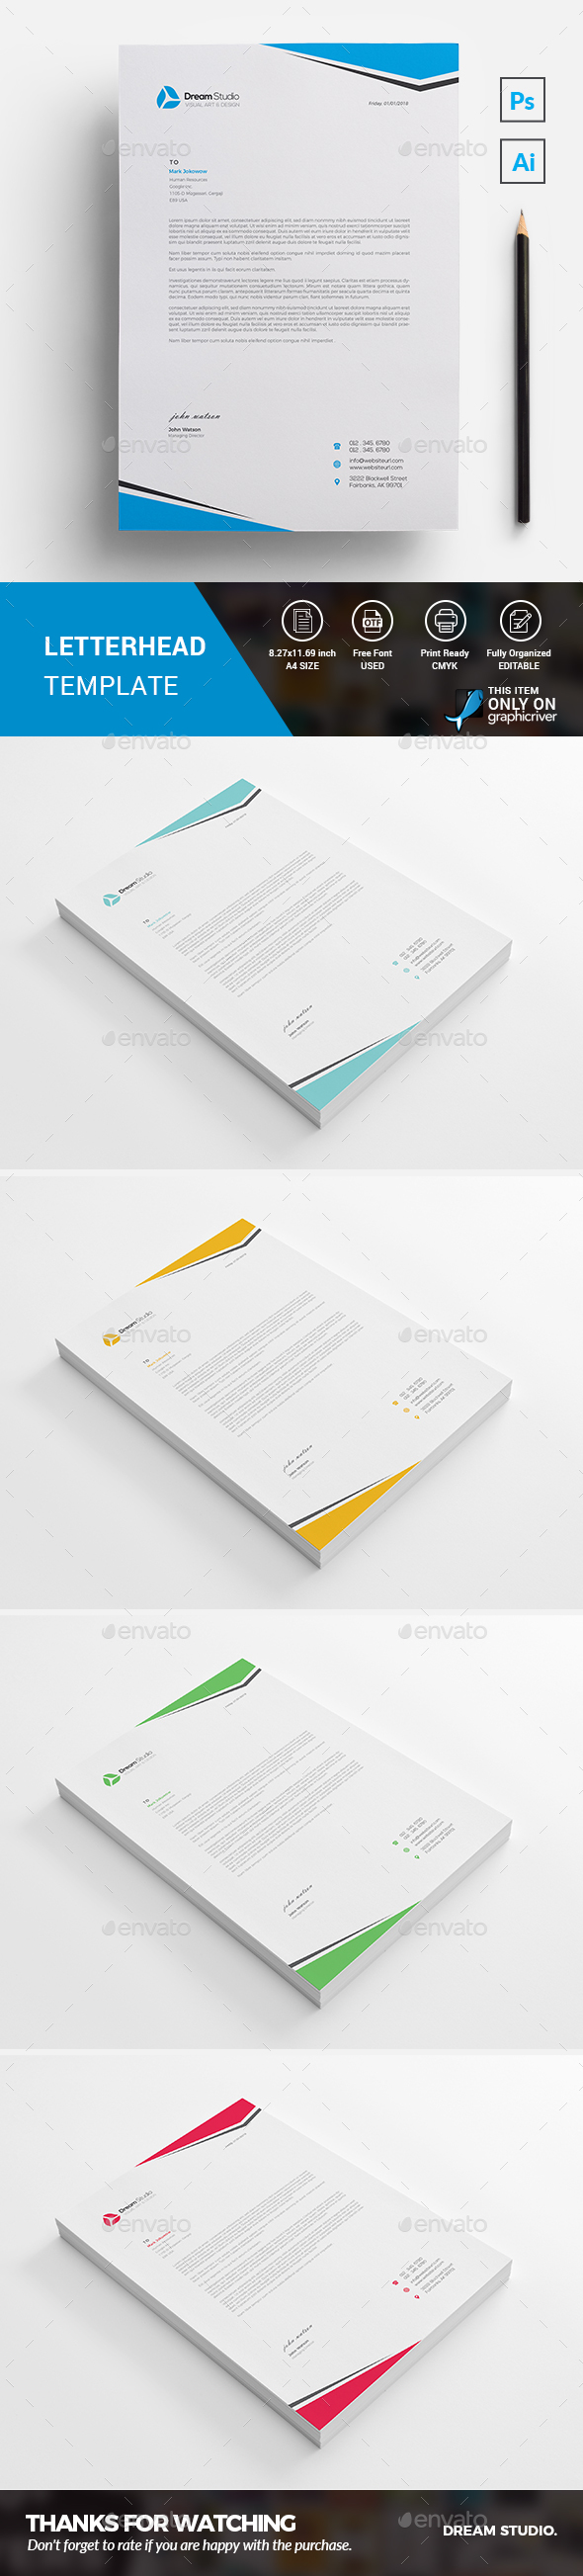 Letterhead template by dreamstudio eg graphicriver letterhead template stationery print templates spiritdancerdesigns Choice Image